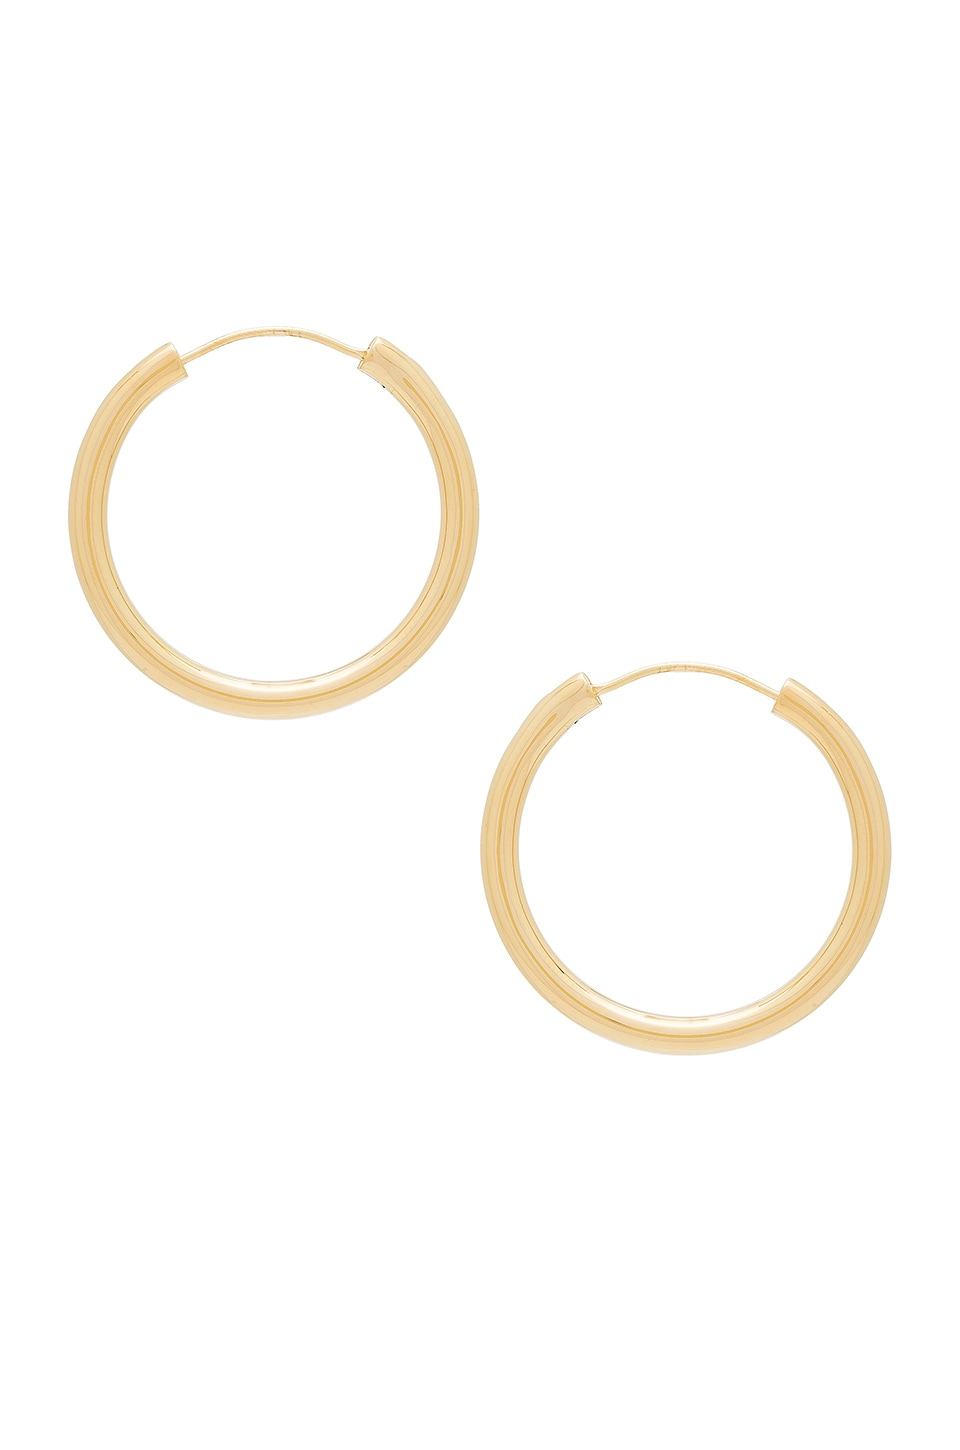 Elizabeth and James Medium Holly Hoops in Yellow Gold